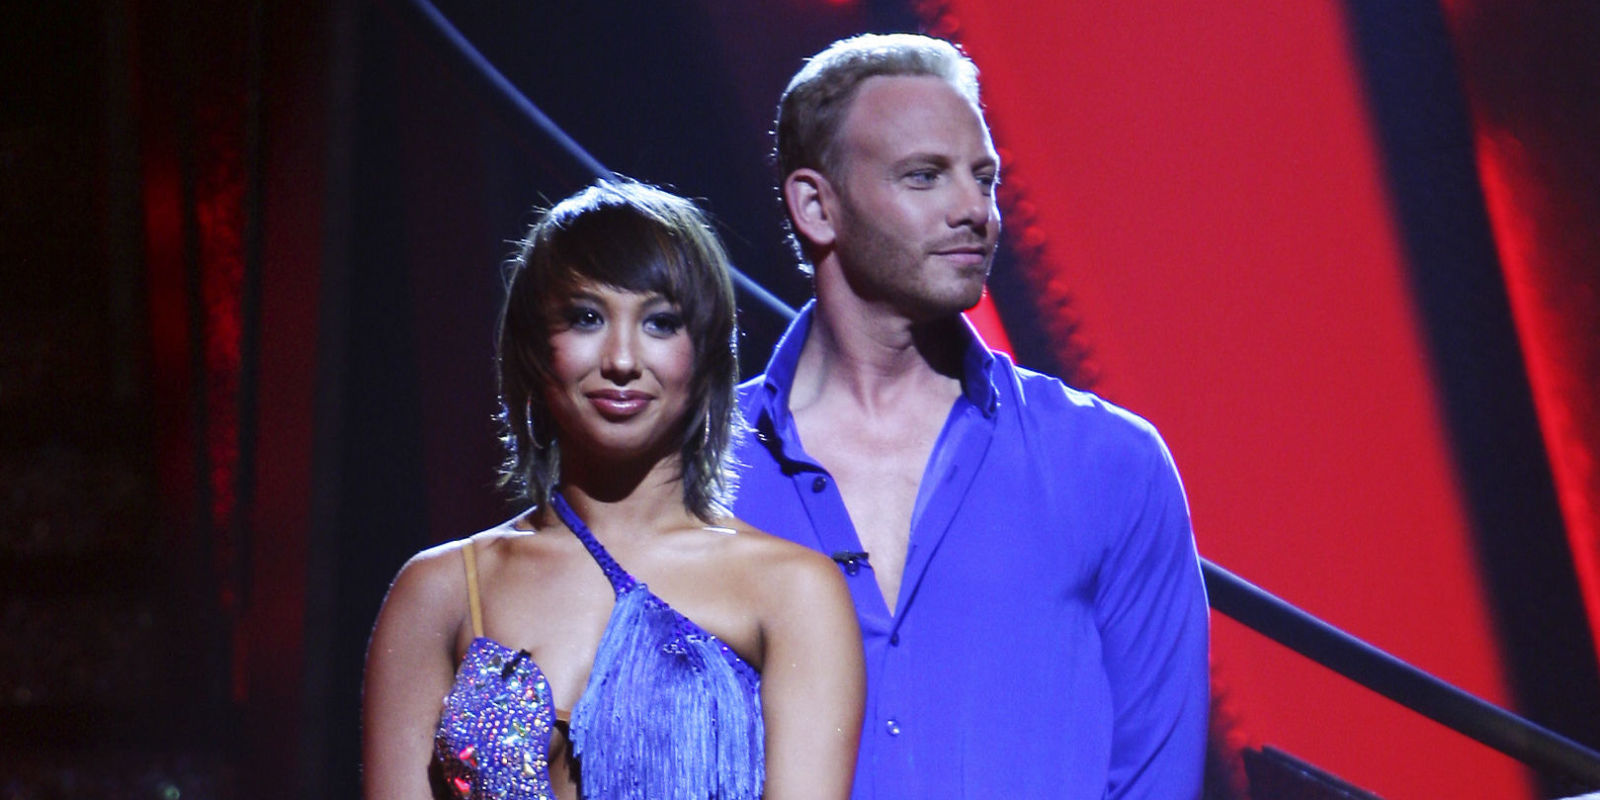 Cheryl Burke and Ian Ziering stand next to each other in colorful outfits on Dancing with the Stars